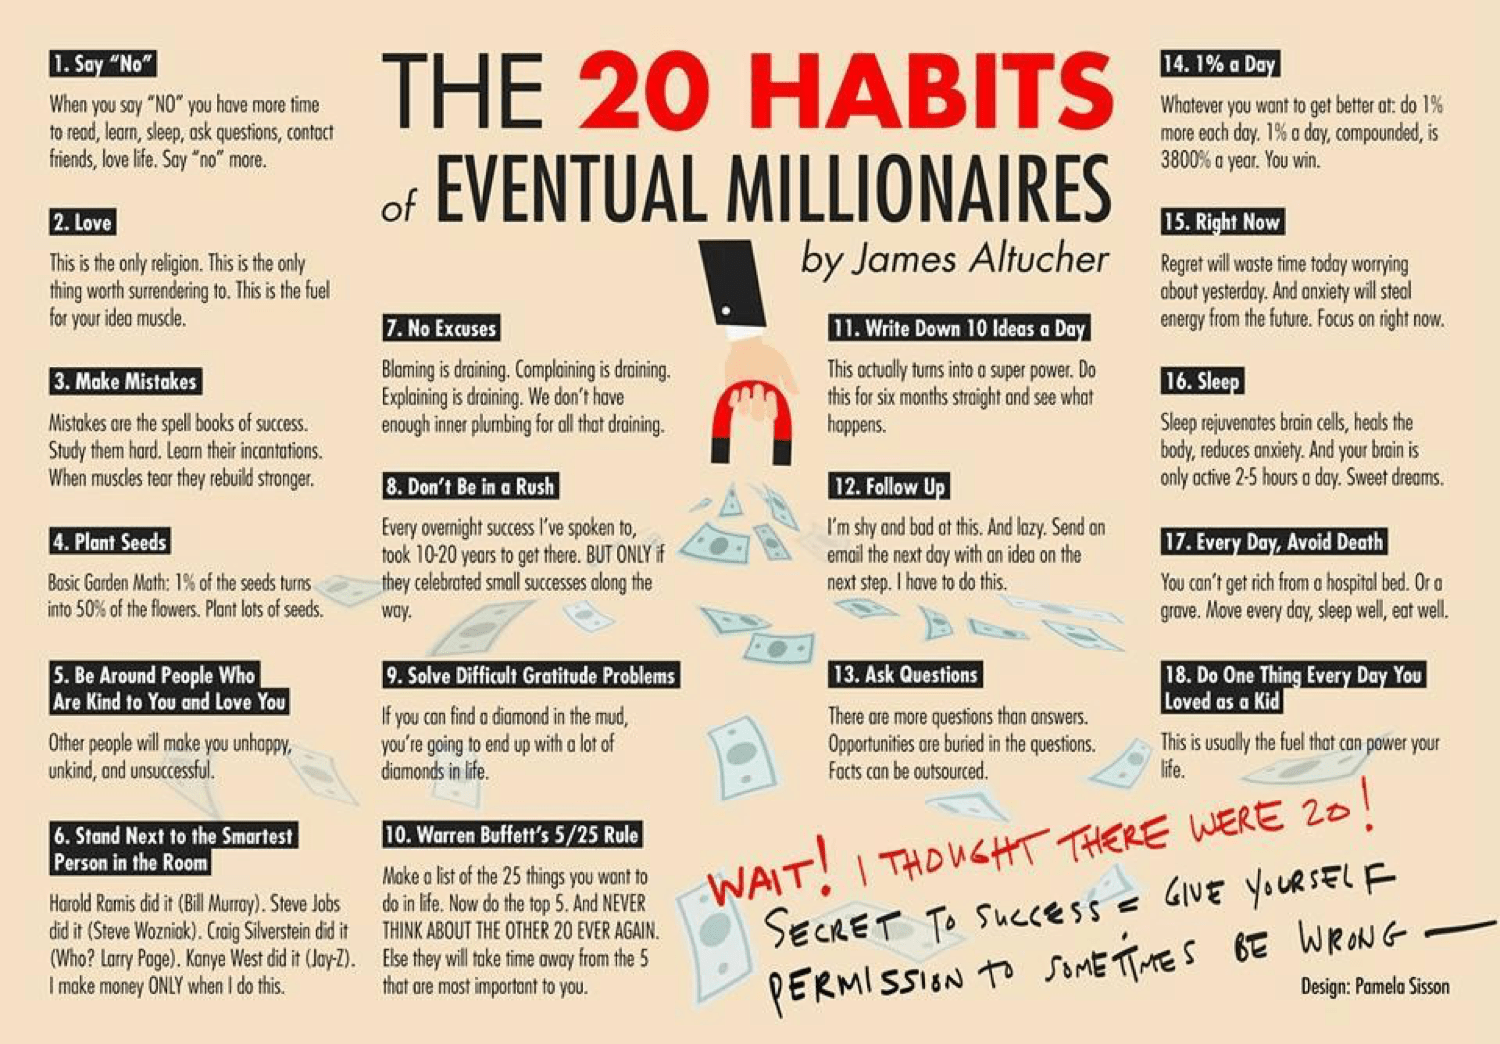 20 habits of eventual millionaires dating 4